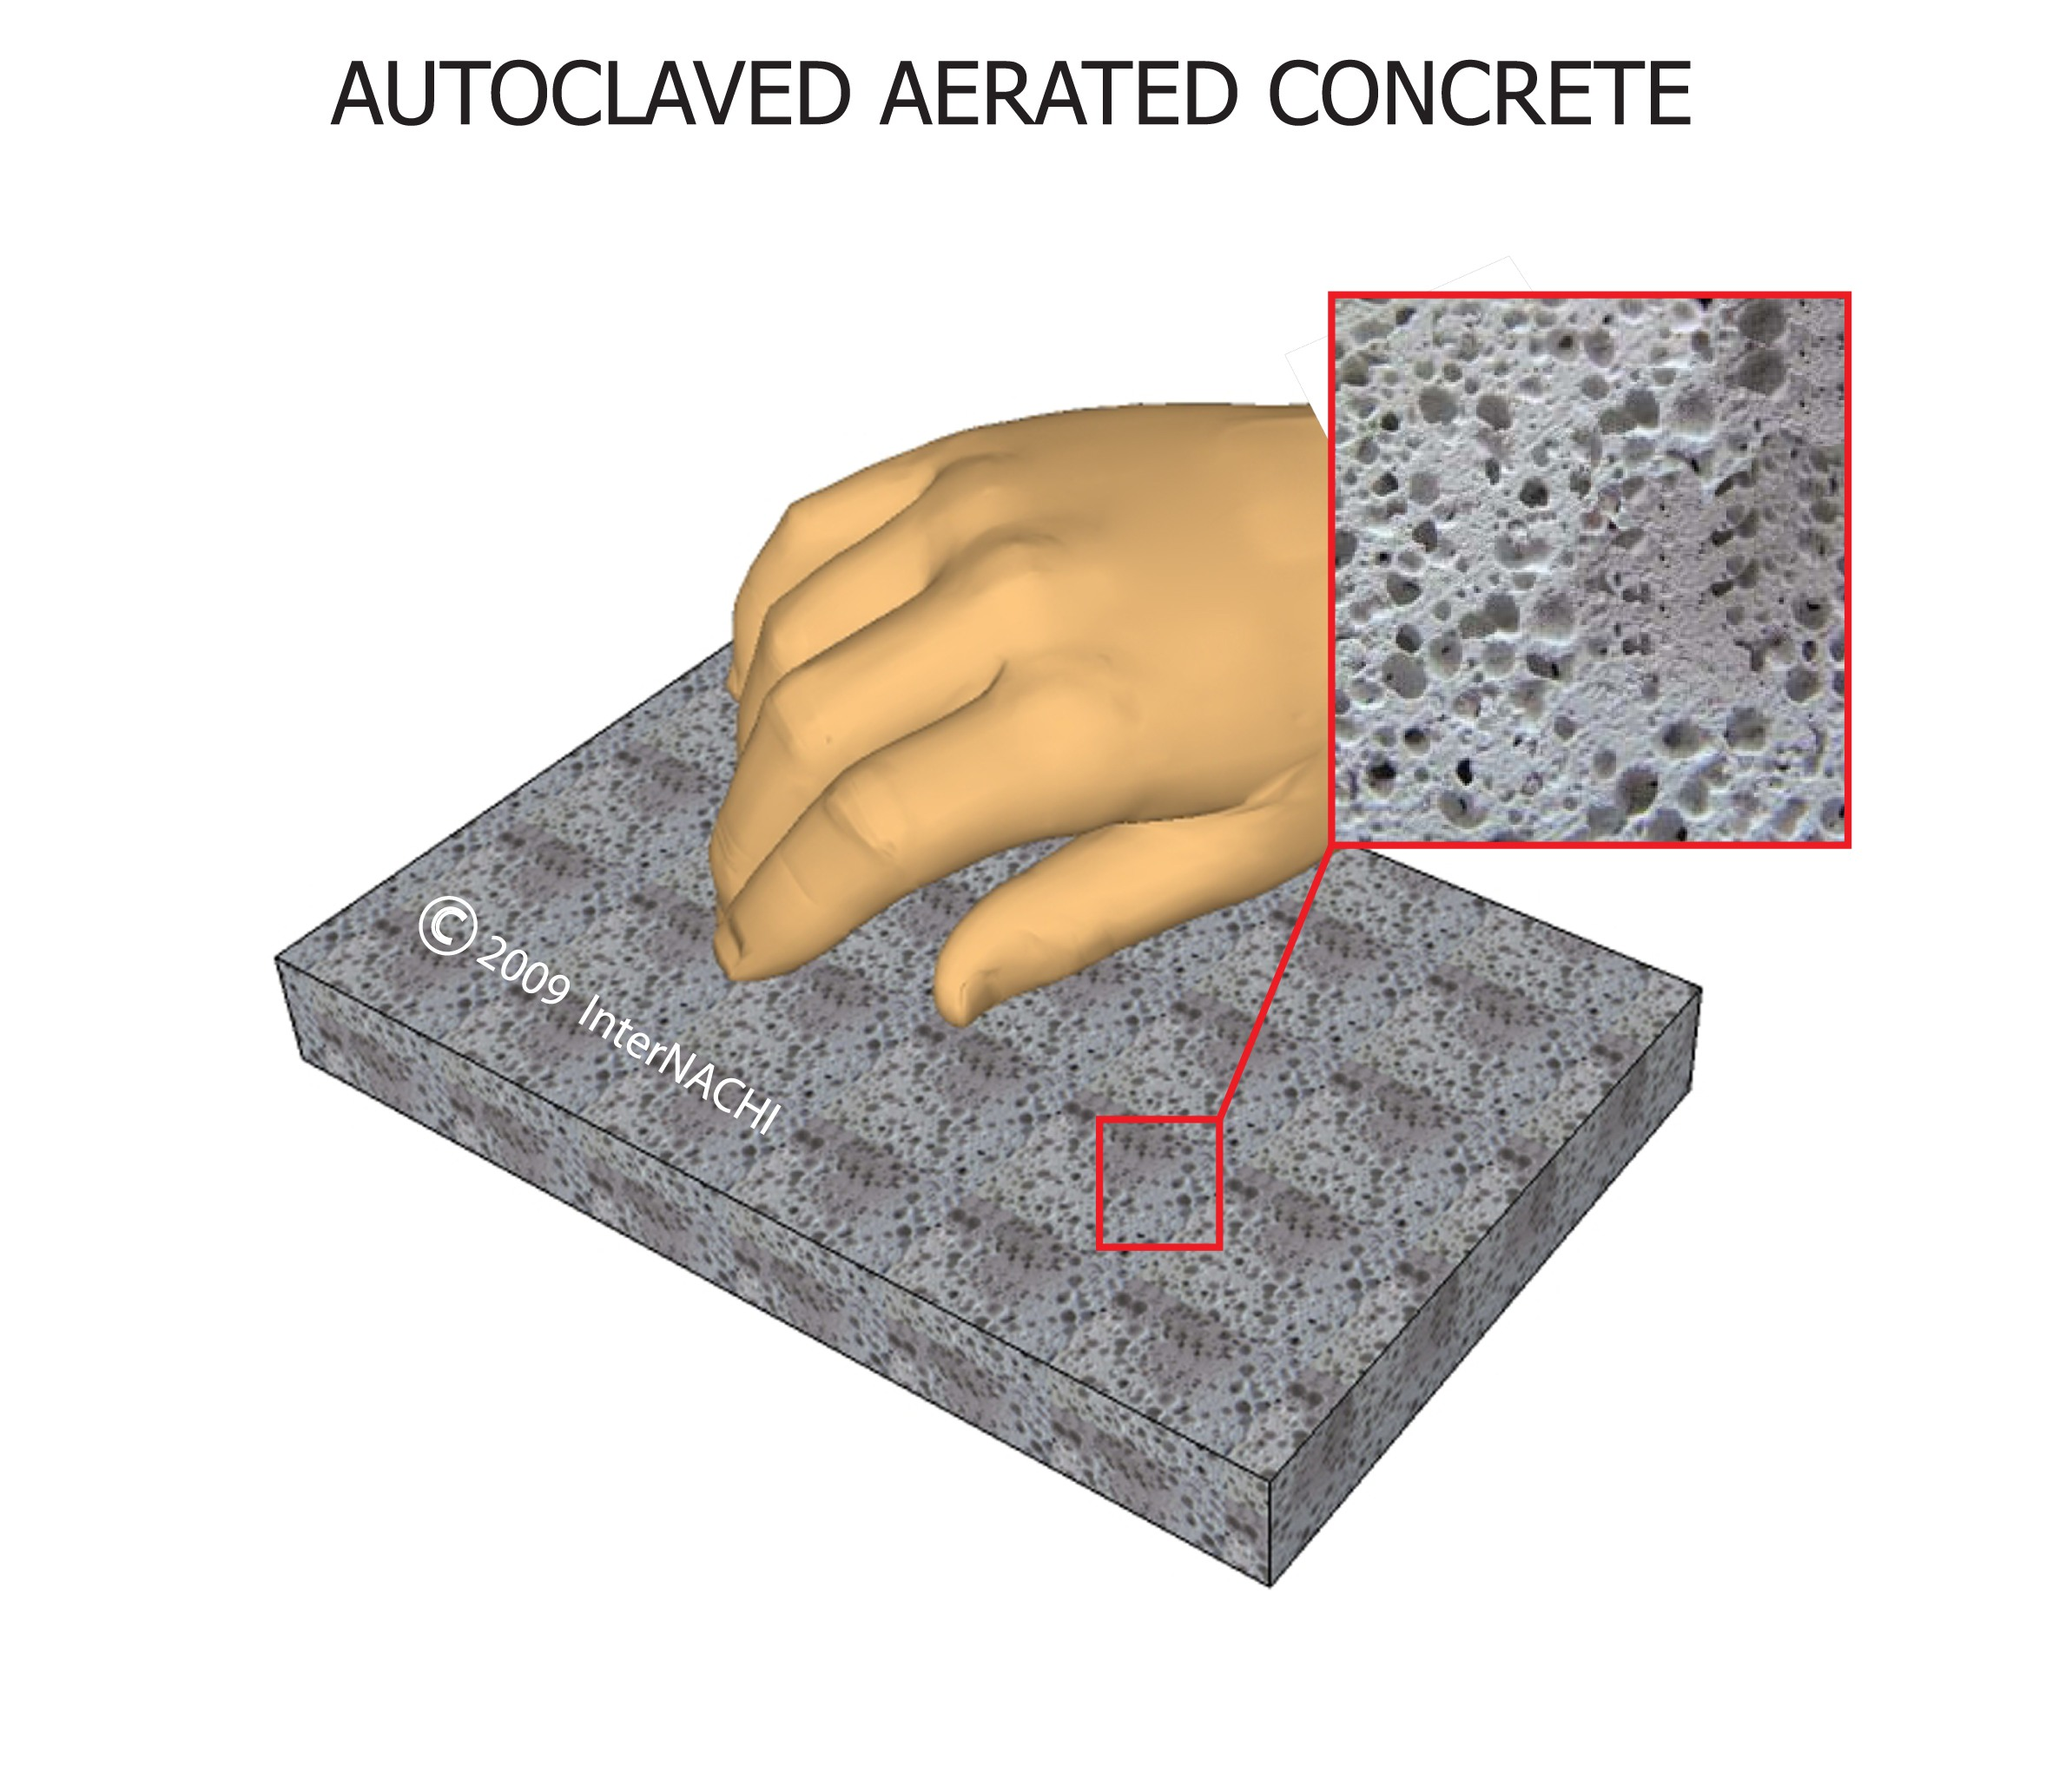 Autoclaved, aerated concrete.